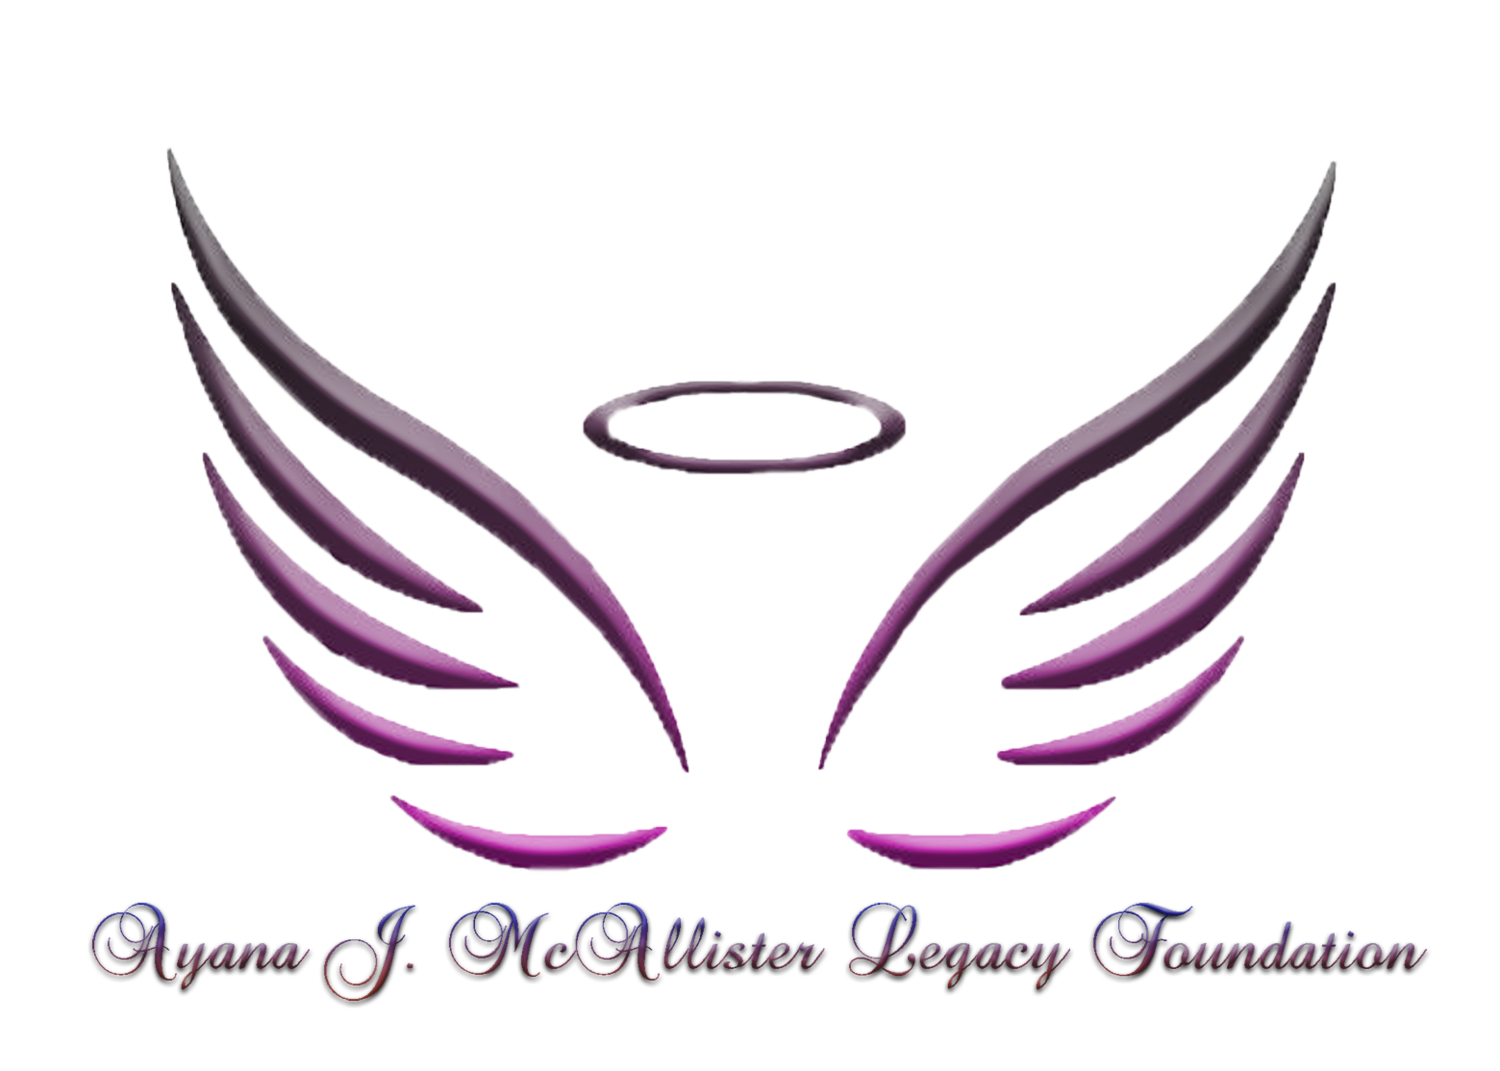 The Ayana J.McAllister Foundation for the Awareness/Affects of Gun Violence